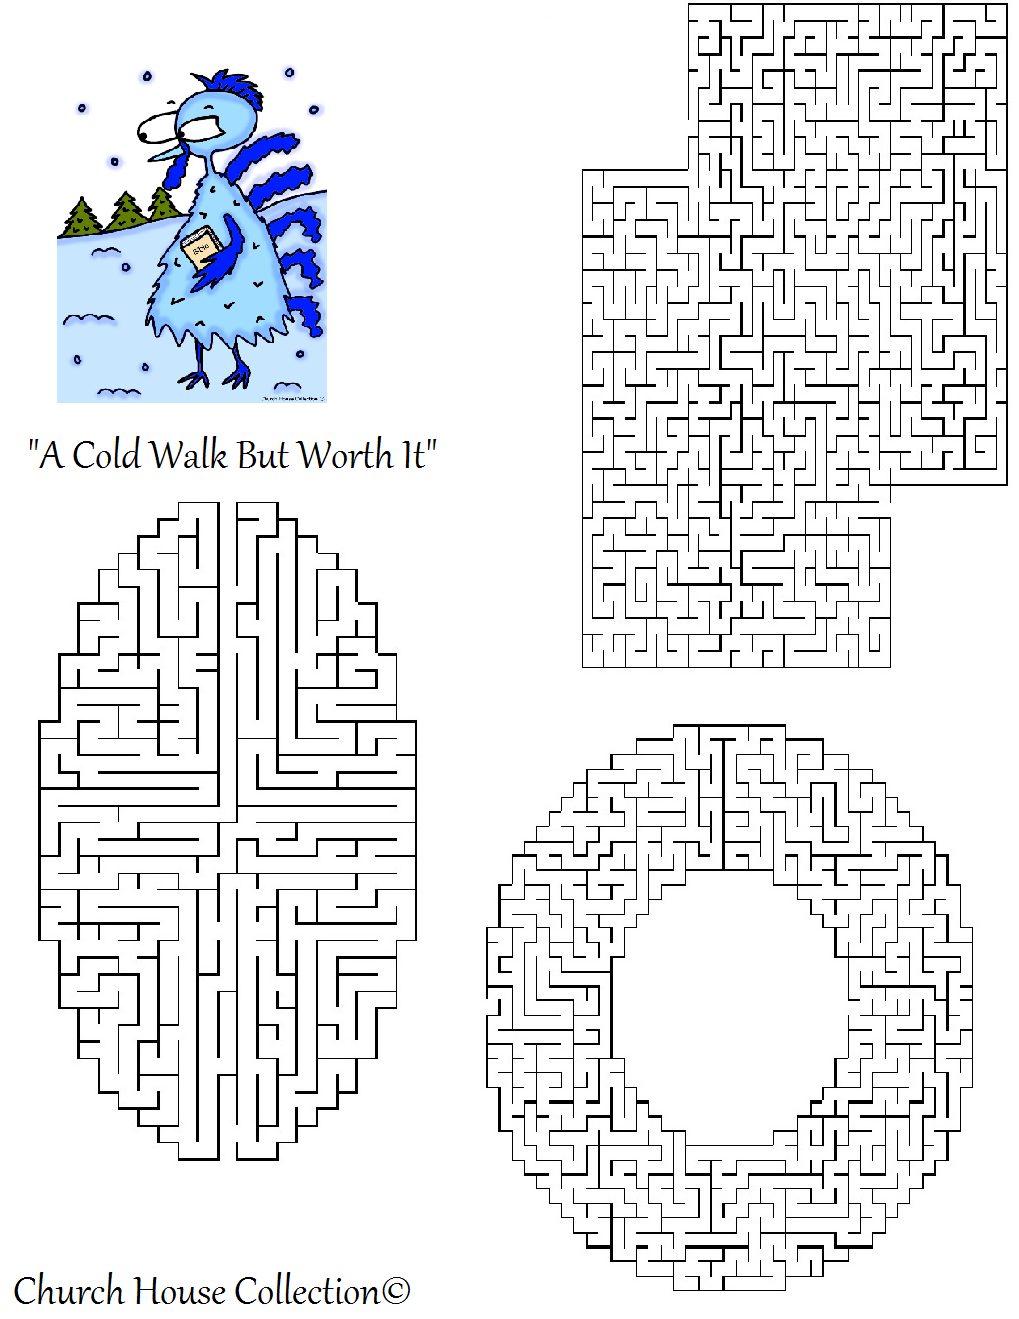 Free Printable Turkey Thanksgiving Mazes For School Kids by Church House Collection